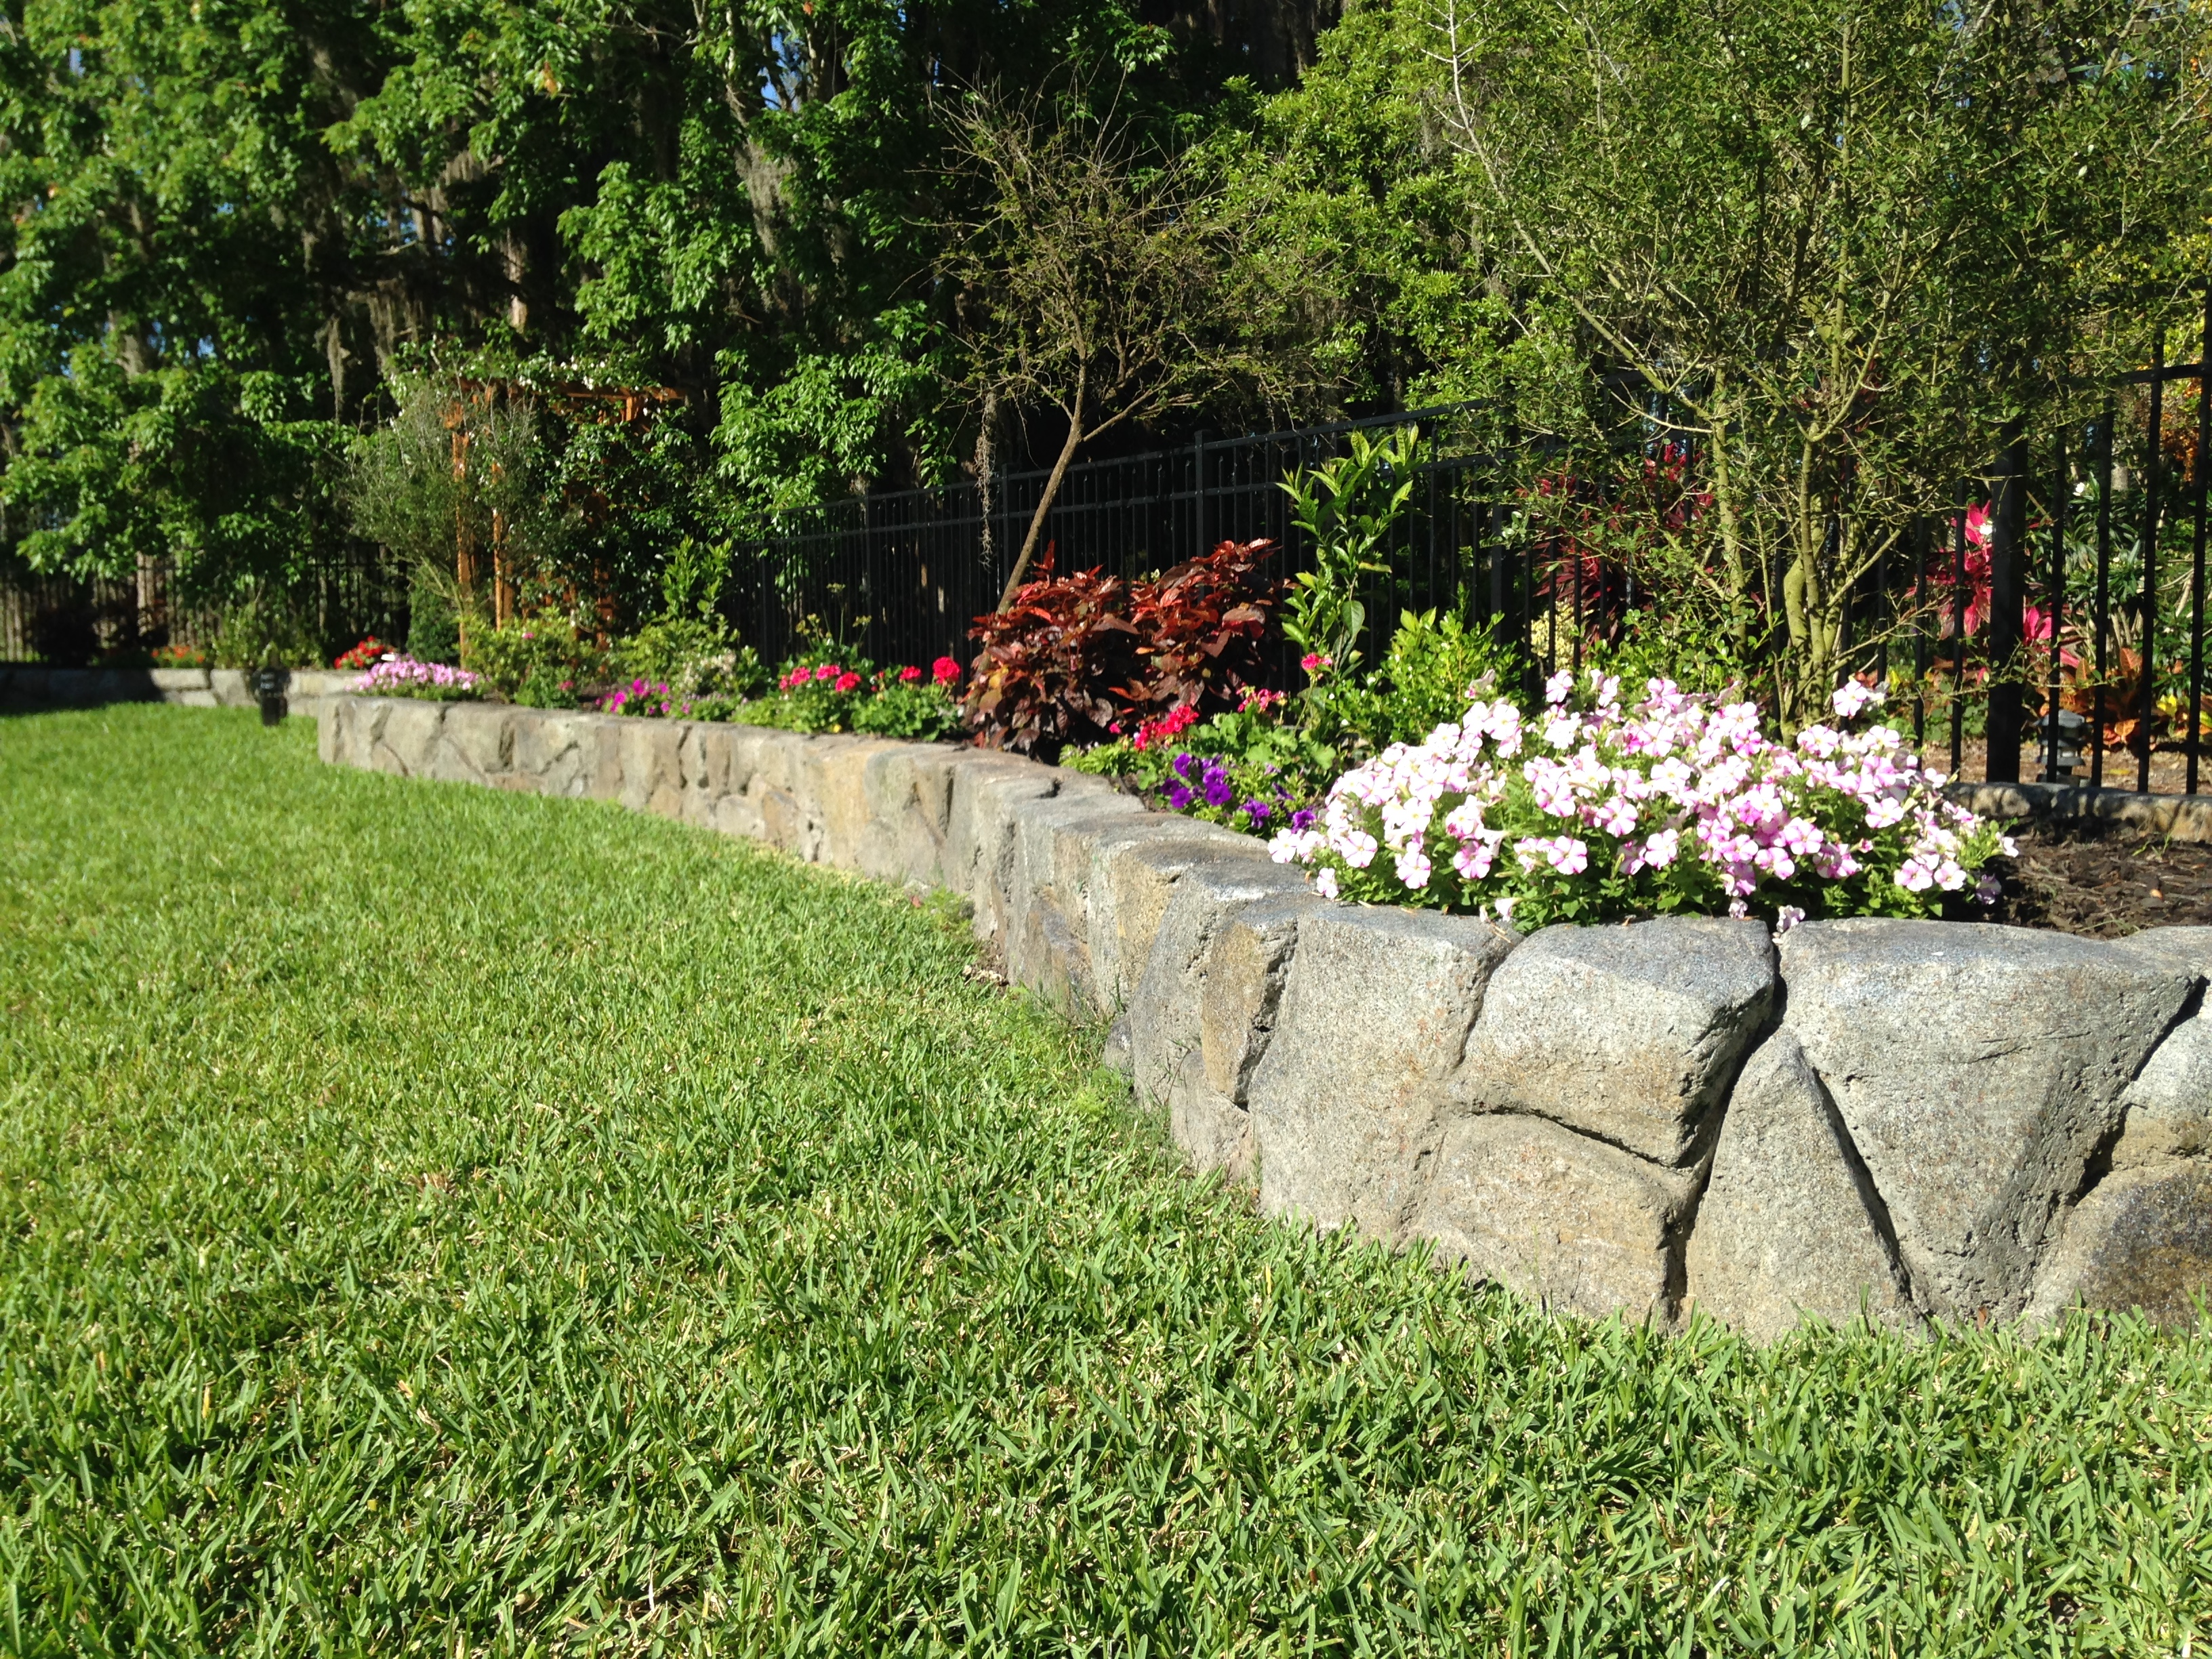 Landscaped stonework wall with green lawn